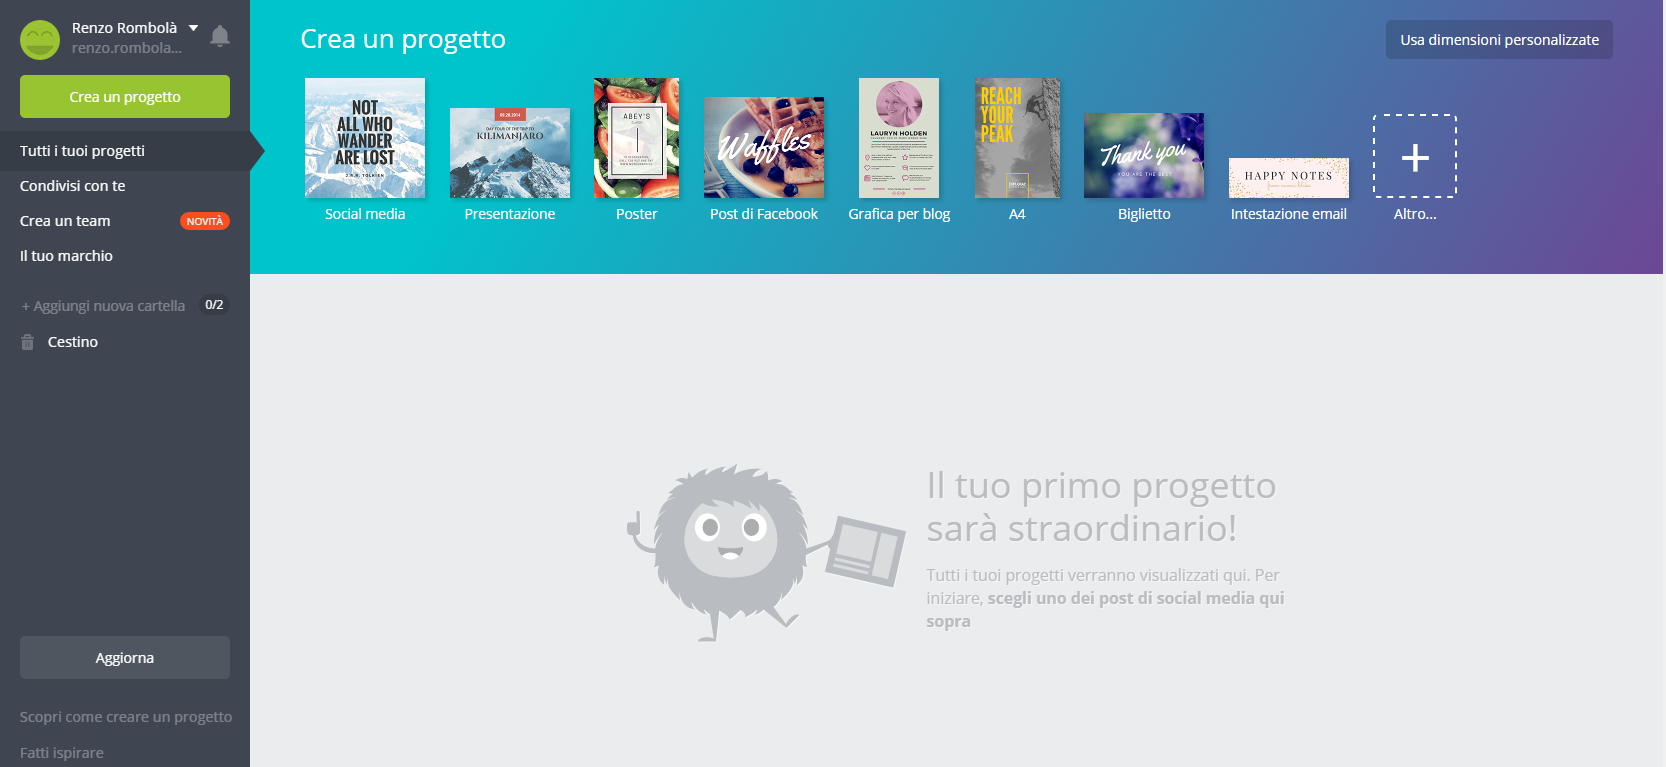 Immagine backend canva